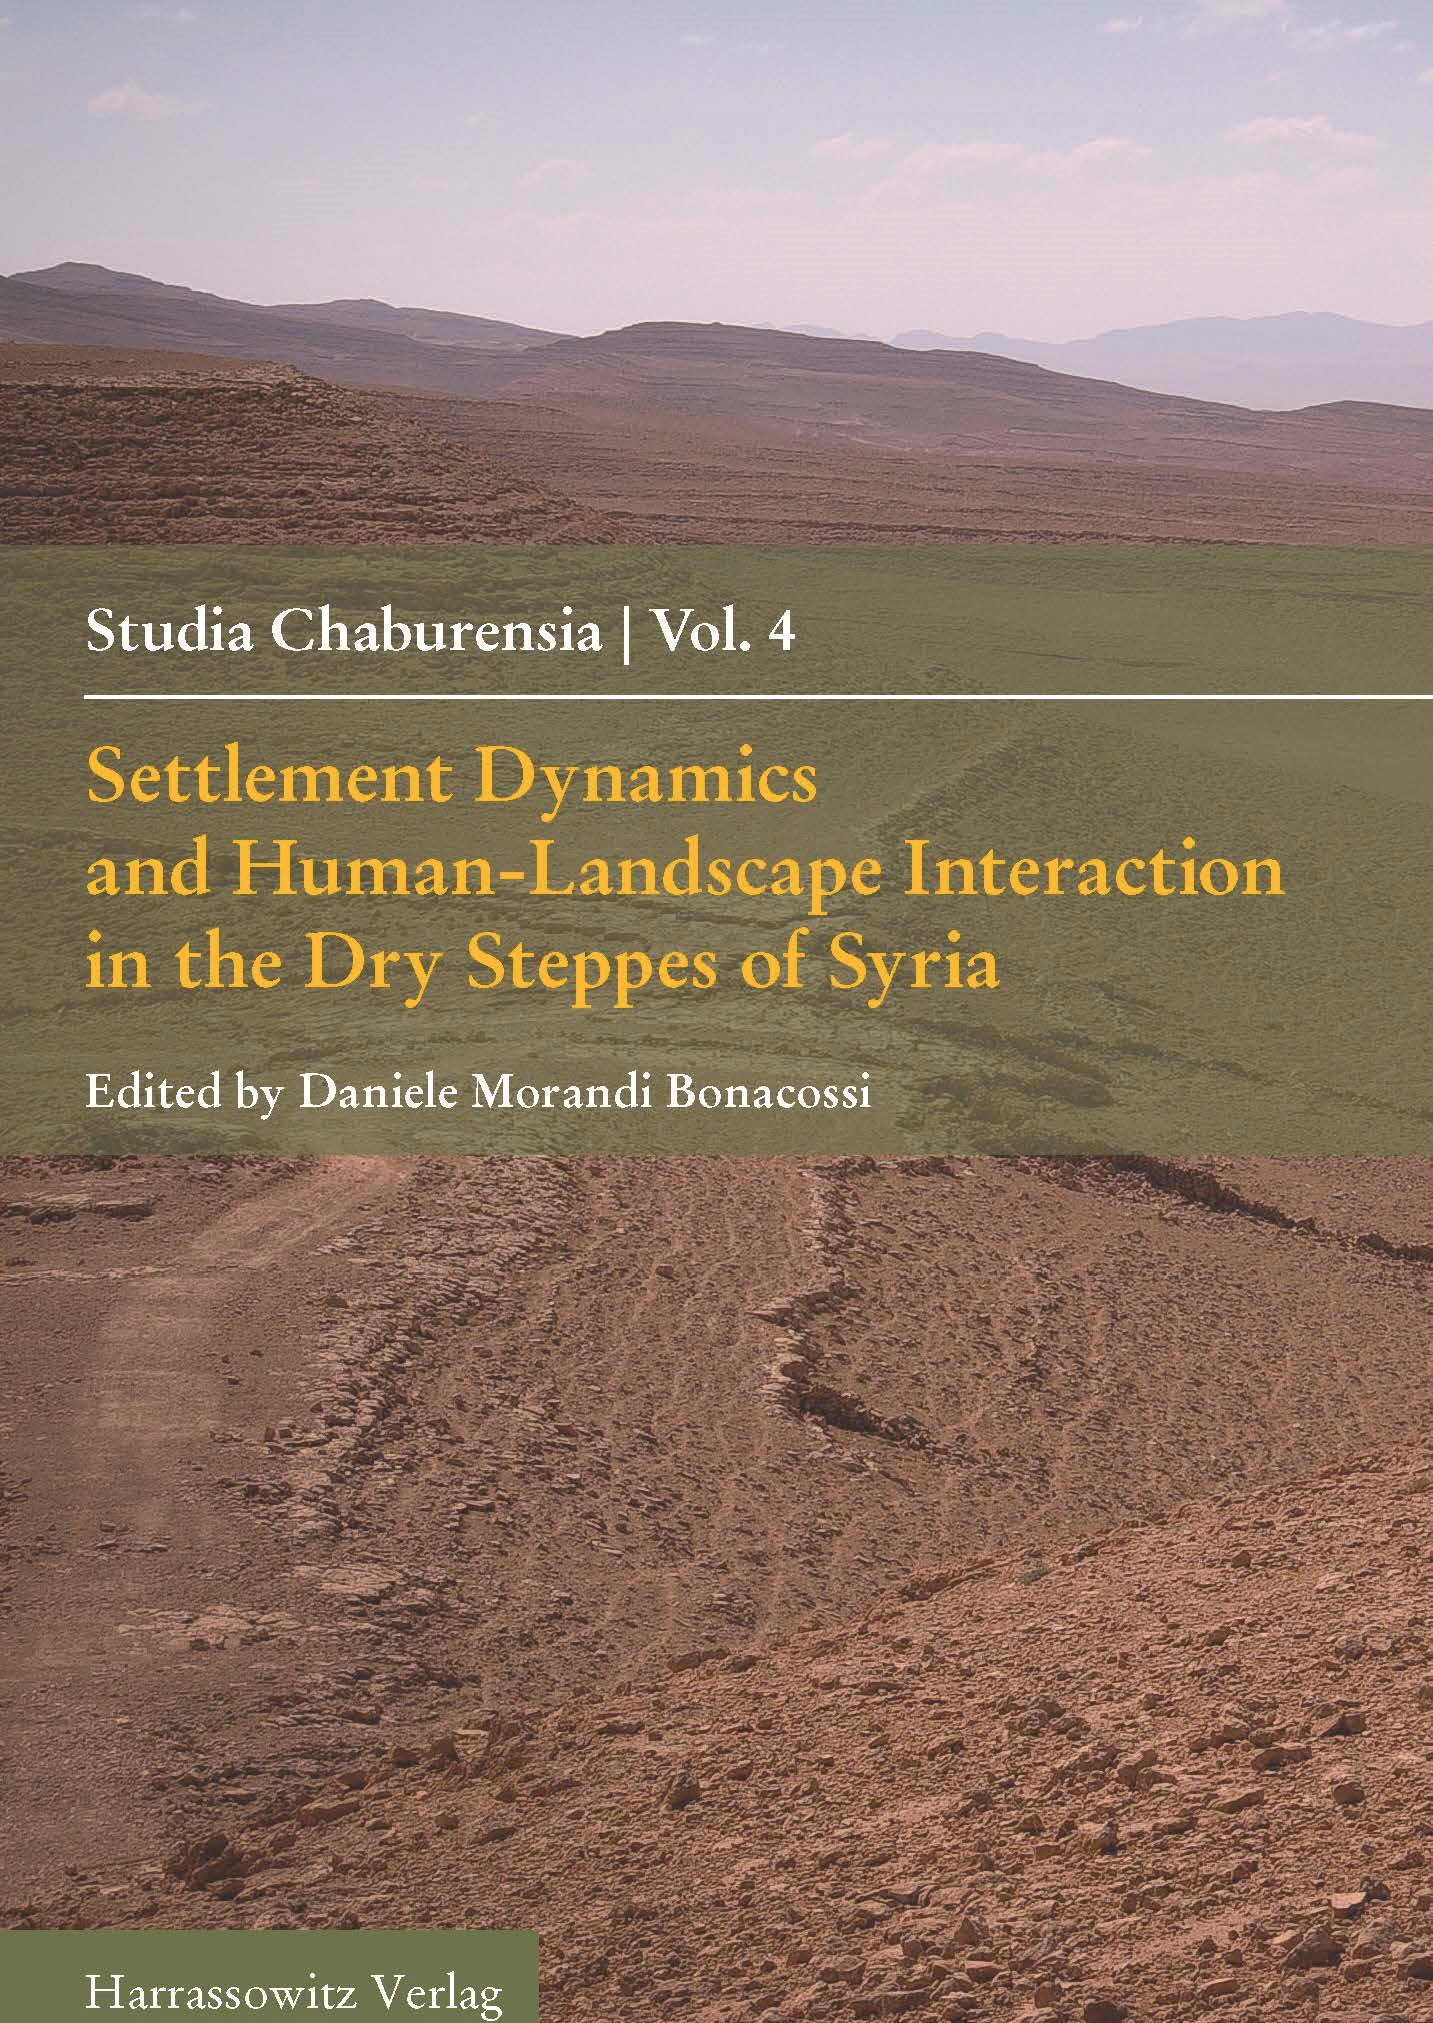 Abbildung von Bonacossi | Settlement Dynamics and Human-Landscape Interaction in the Dry Steppes of Syria | 2014